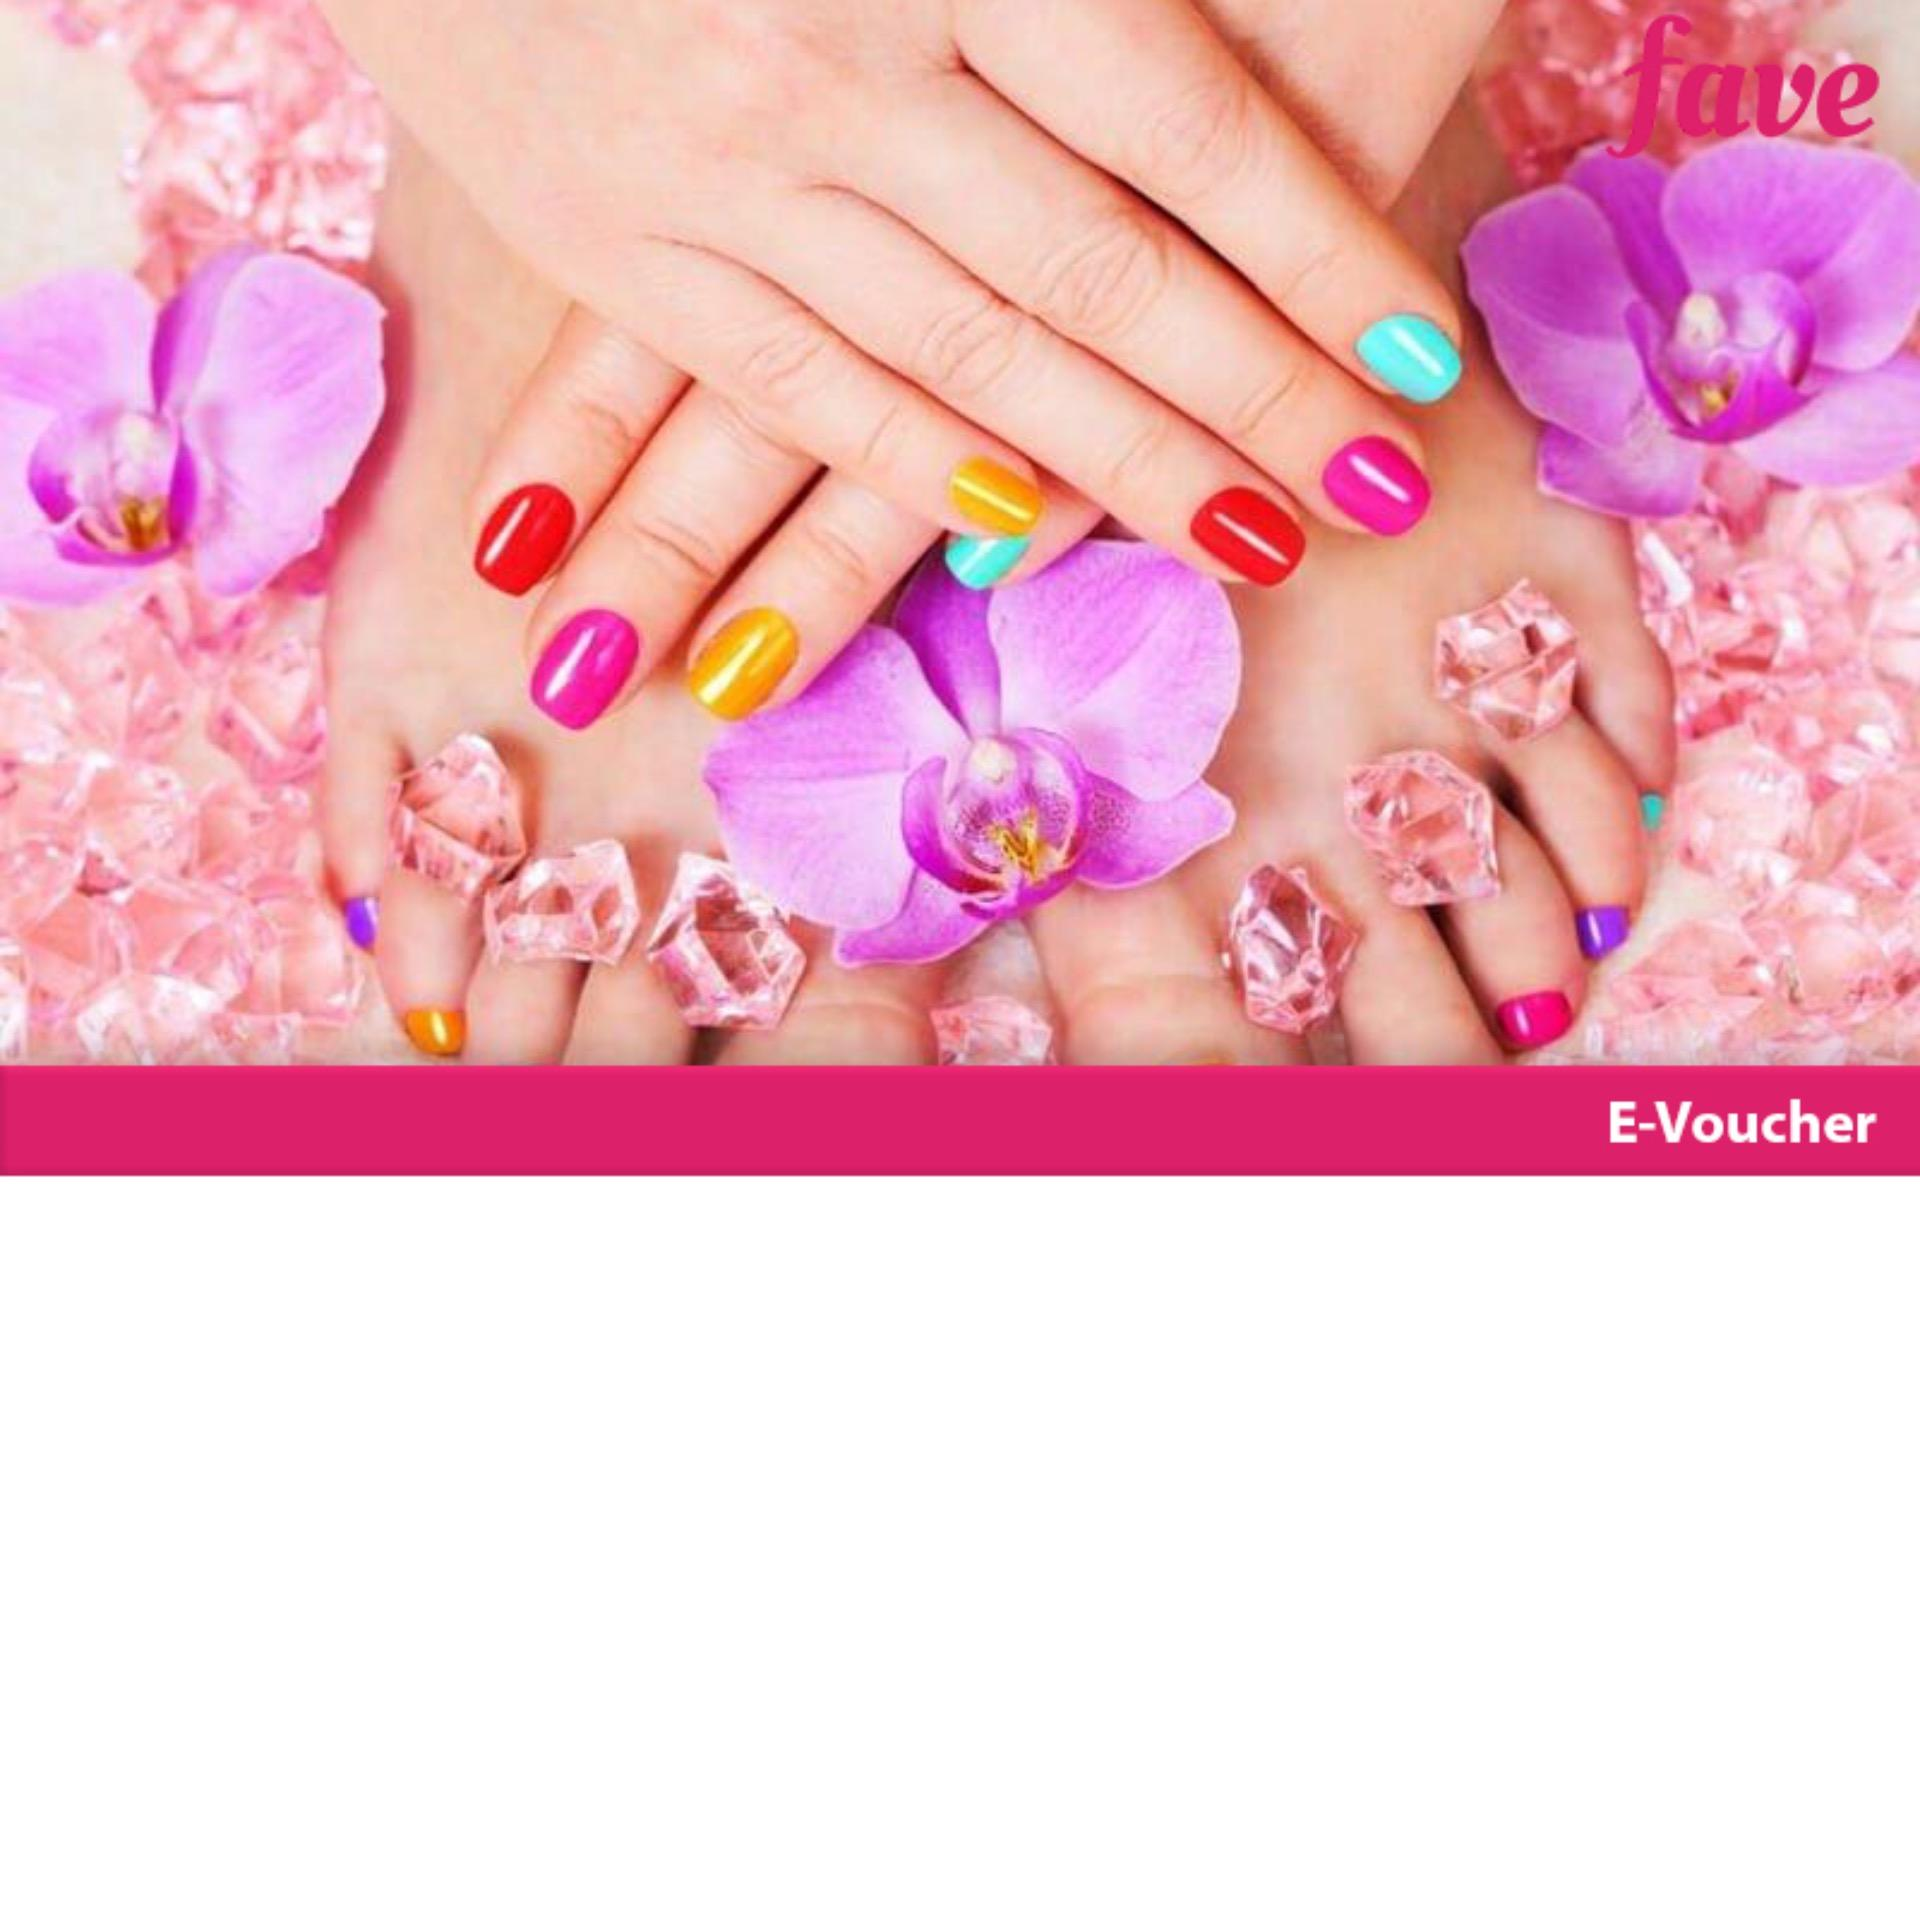 [mall Ambassador] Aurel Hair & Beauty 1x Manicure / Pedicure Free Nail Gel/nail Art By Fave Indonesia.